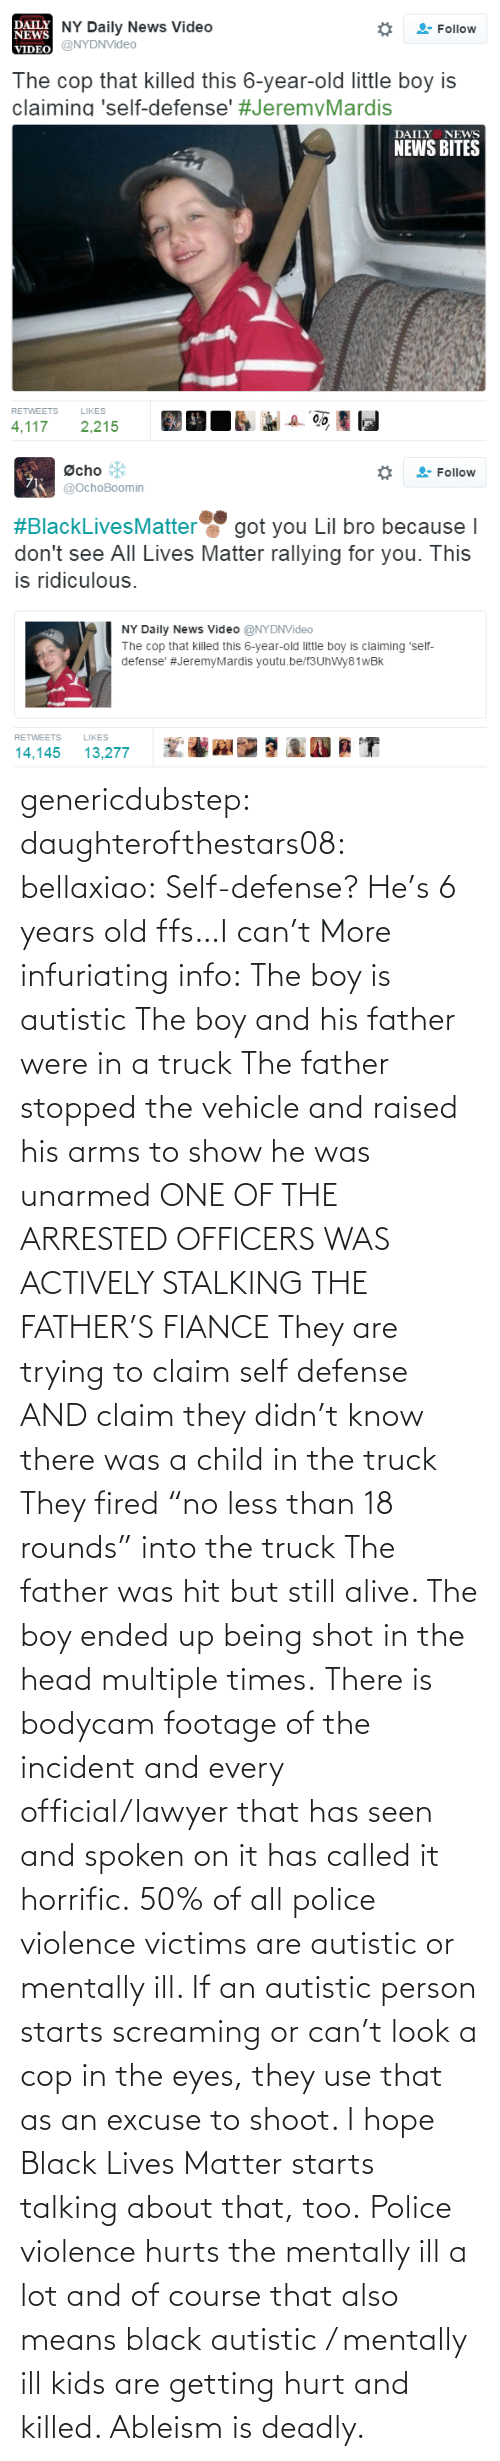 "hit: genericdubstep: daughterofthestars08:  bellaxiao:  Self-defense? He's 6 years old ffs…I can't  More infuriating info: The boy is autistic The boy and his father were in a truck The father stopped the vehicle and raised his arms to show he was unarmed ONE OF THE ARRESTED OFFICERS WAS ACTIVELY STALKING THE FATHER'S FIANCE They are trying to claim self defense AND claim they didn't know there was a child in the truck They fired ""no less than 18 rounds"" into the truck The father was hit but still alive. The boy ended up being shot in the head multiple times. There is bodycam footage of the incident and every official/lawyer that has seen and spoken on it has called it horrific.  50% of all police violence victims are autistic or mentally ill. If an autistic person starts screaming or can't look a cop in the eyes, they use that as an excuse to shoot. I hope Black Lives Matter starts talking about that, too. Police violence hurts the mentally ill a lot and of course that also means black autistic / mentally ill kids are getting hurt and killed. Ableism is deadly."